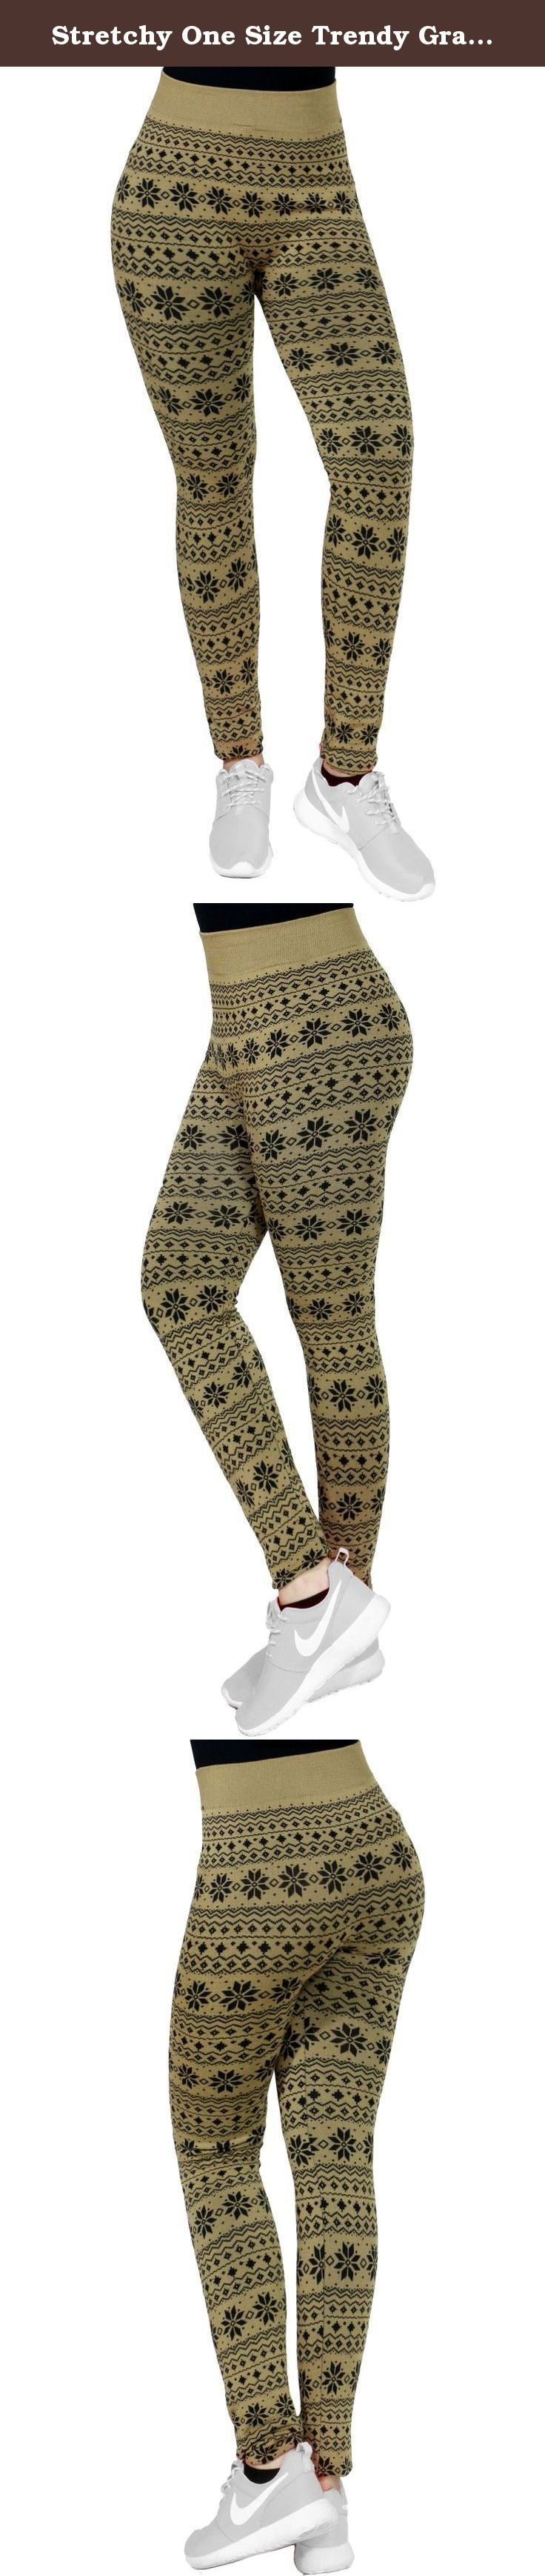 Stretchy One Size Trendy Graphic Print High Waist Fleece Legging Pant For Women (ONE SIZE, SNOW/CAMEL-915). FANDSWAY brand products are made from high quality materials. Our designers are able to create the trendiest up-to-date outerwear by integrating classic and modern fashion trends. We specialize in women, lady, junior, and girl? outerwear for all occasions. Our products are made from various combinations of polyester, viscos, acrylic, rayon, spandex, cotton, PU, nylon, elastin, and...